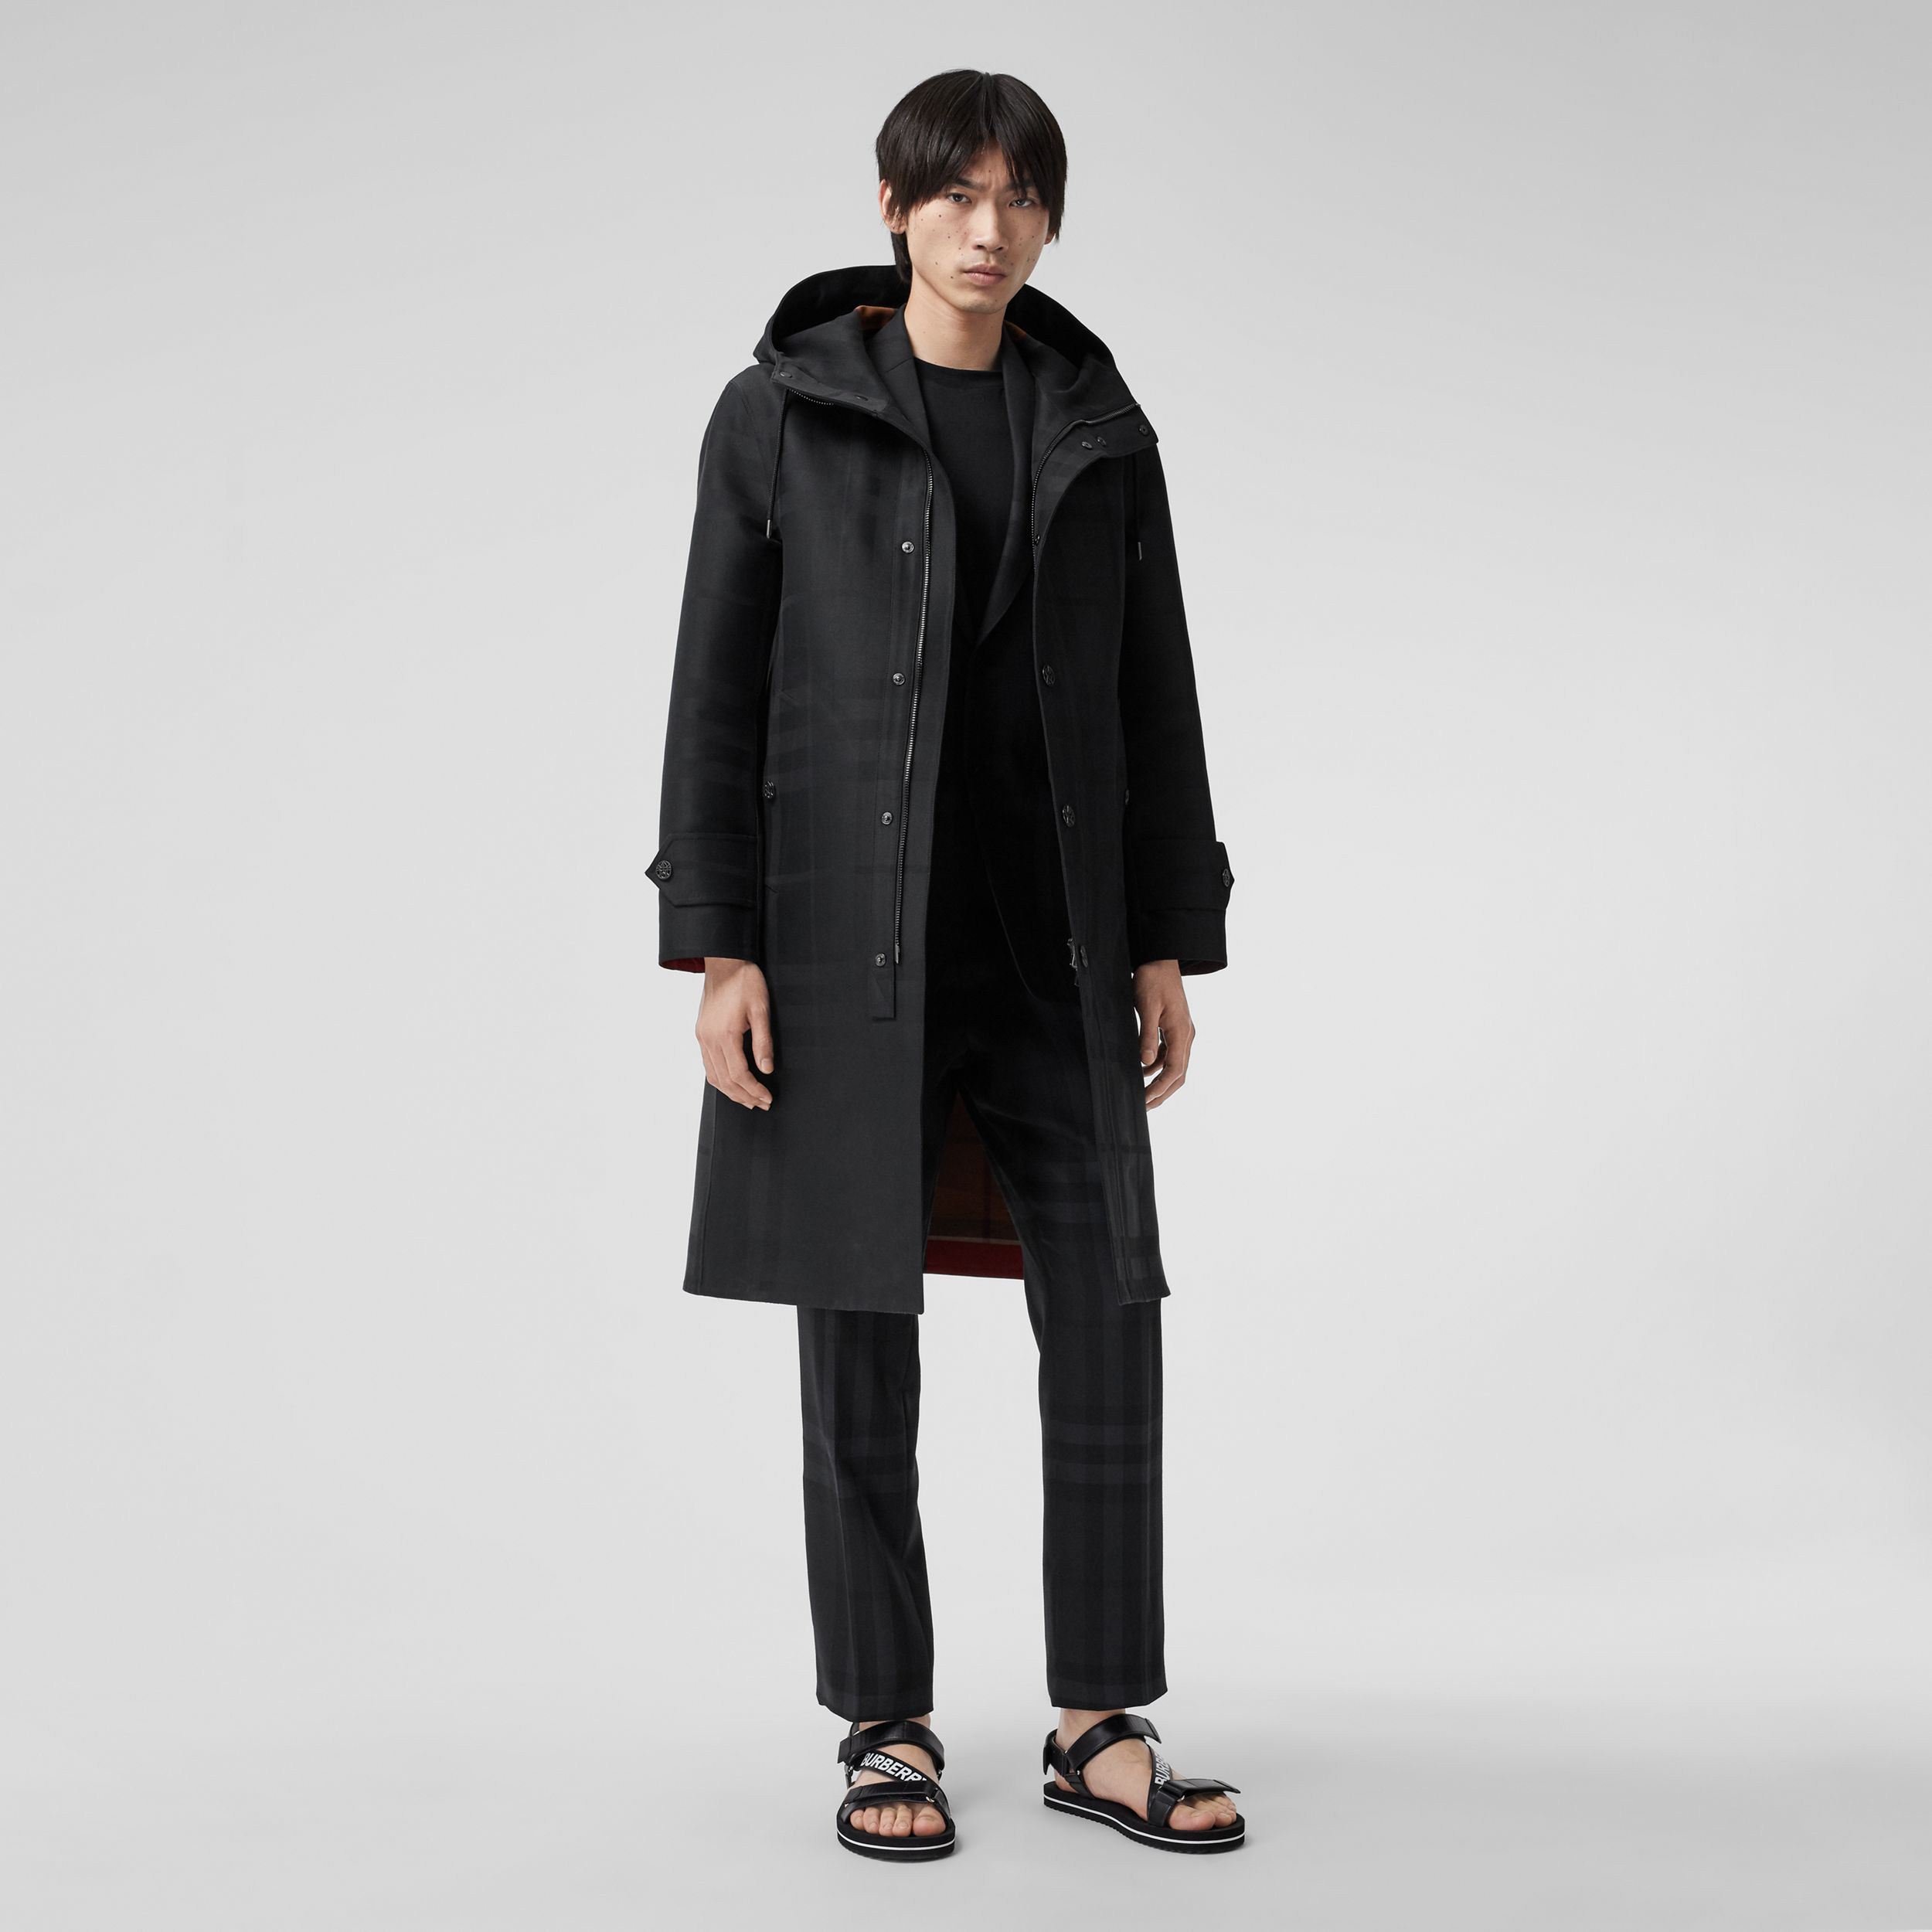 Globe Graphic Detail Check Technical Cotton Coat in Black - Men | Burberry Canada - 1